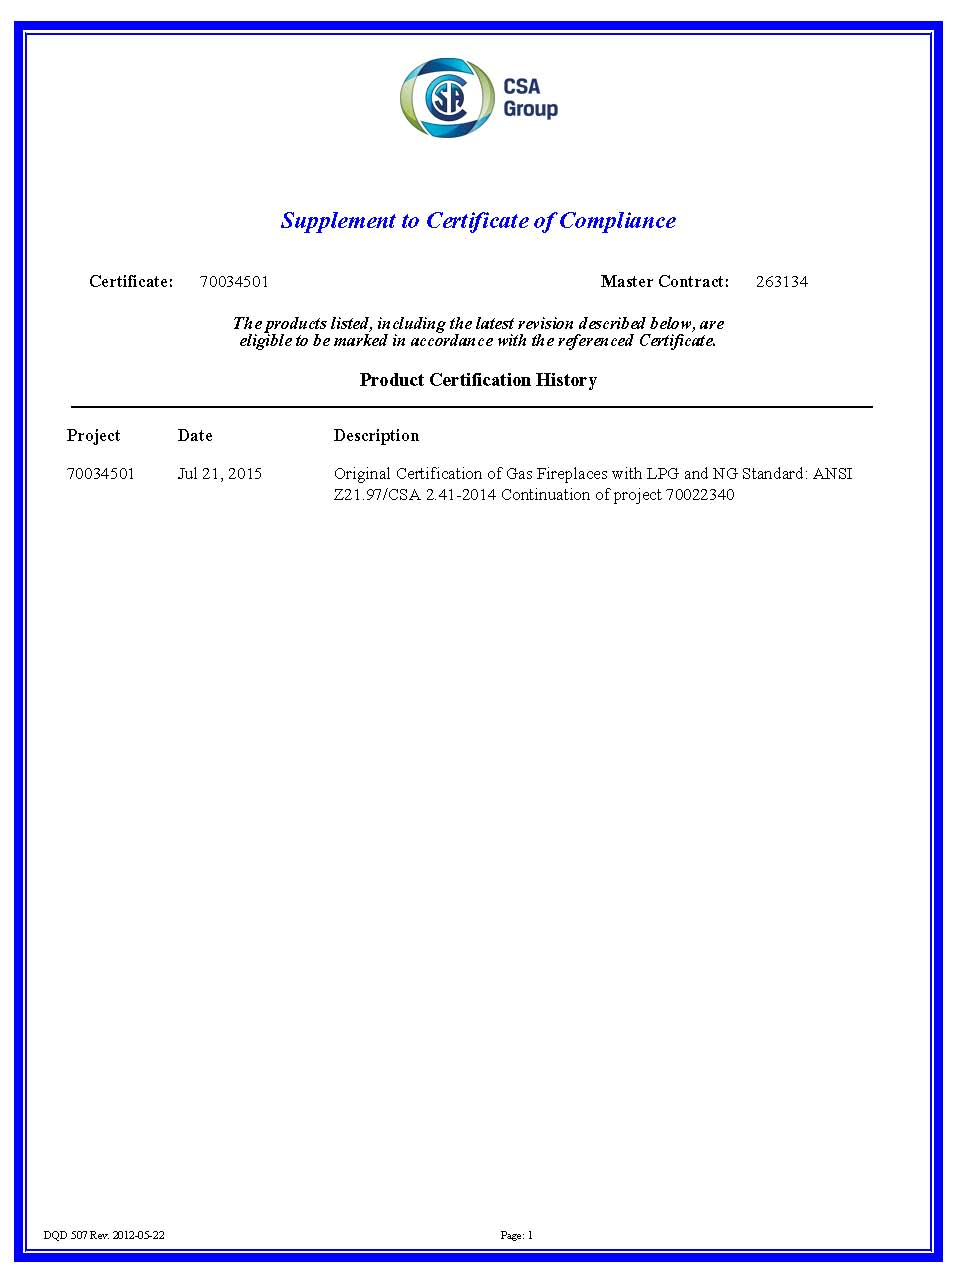 CSA Gas Fire Pit Certify